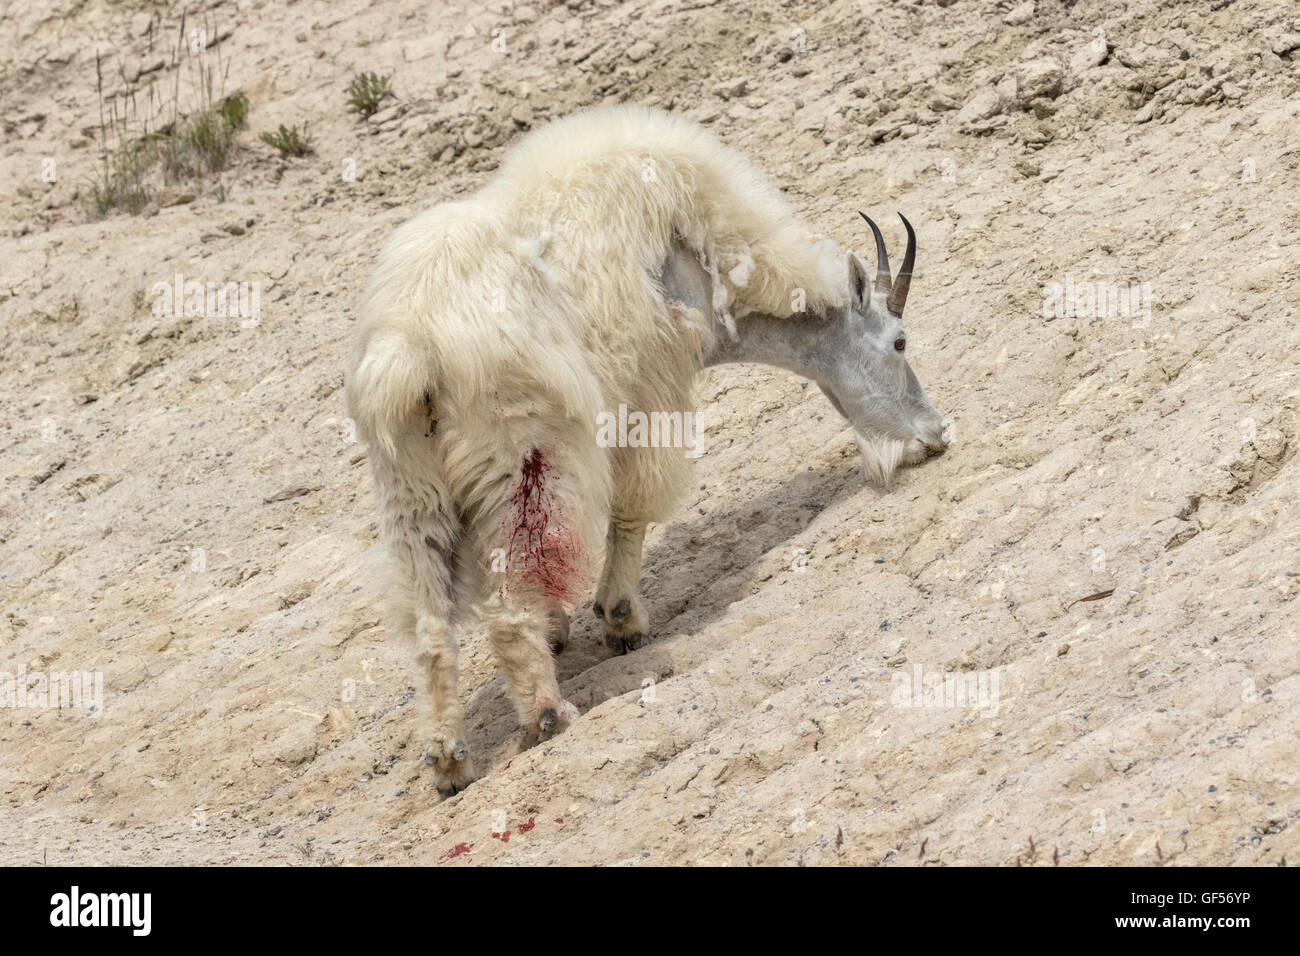 Mountain Goat nanny with bloody wound after fighting - Stock Image